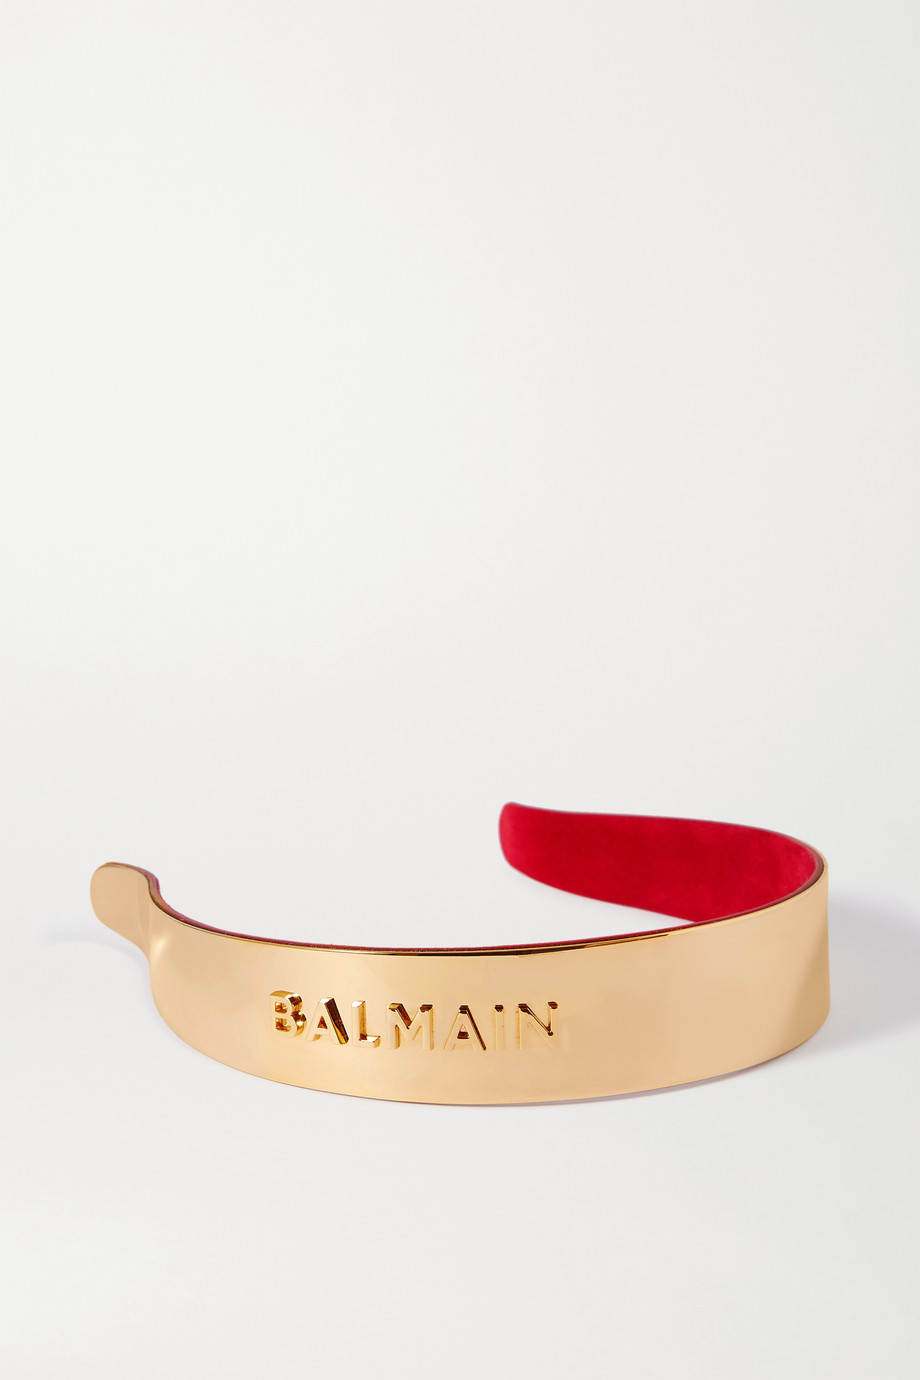 BALMAIN PARIS HAIR COUTURE Gold-plated headband